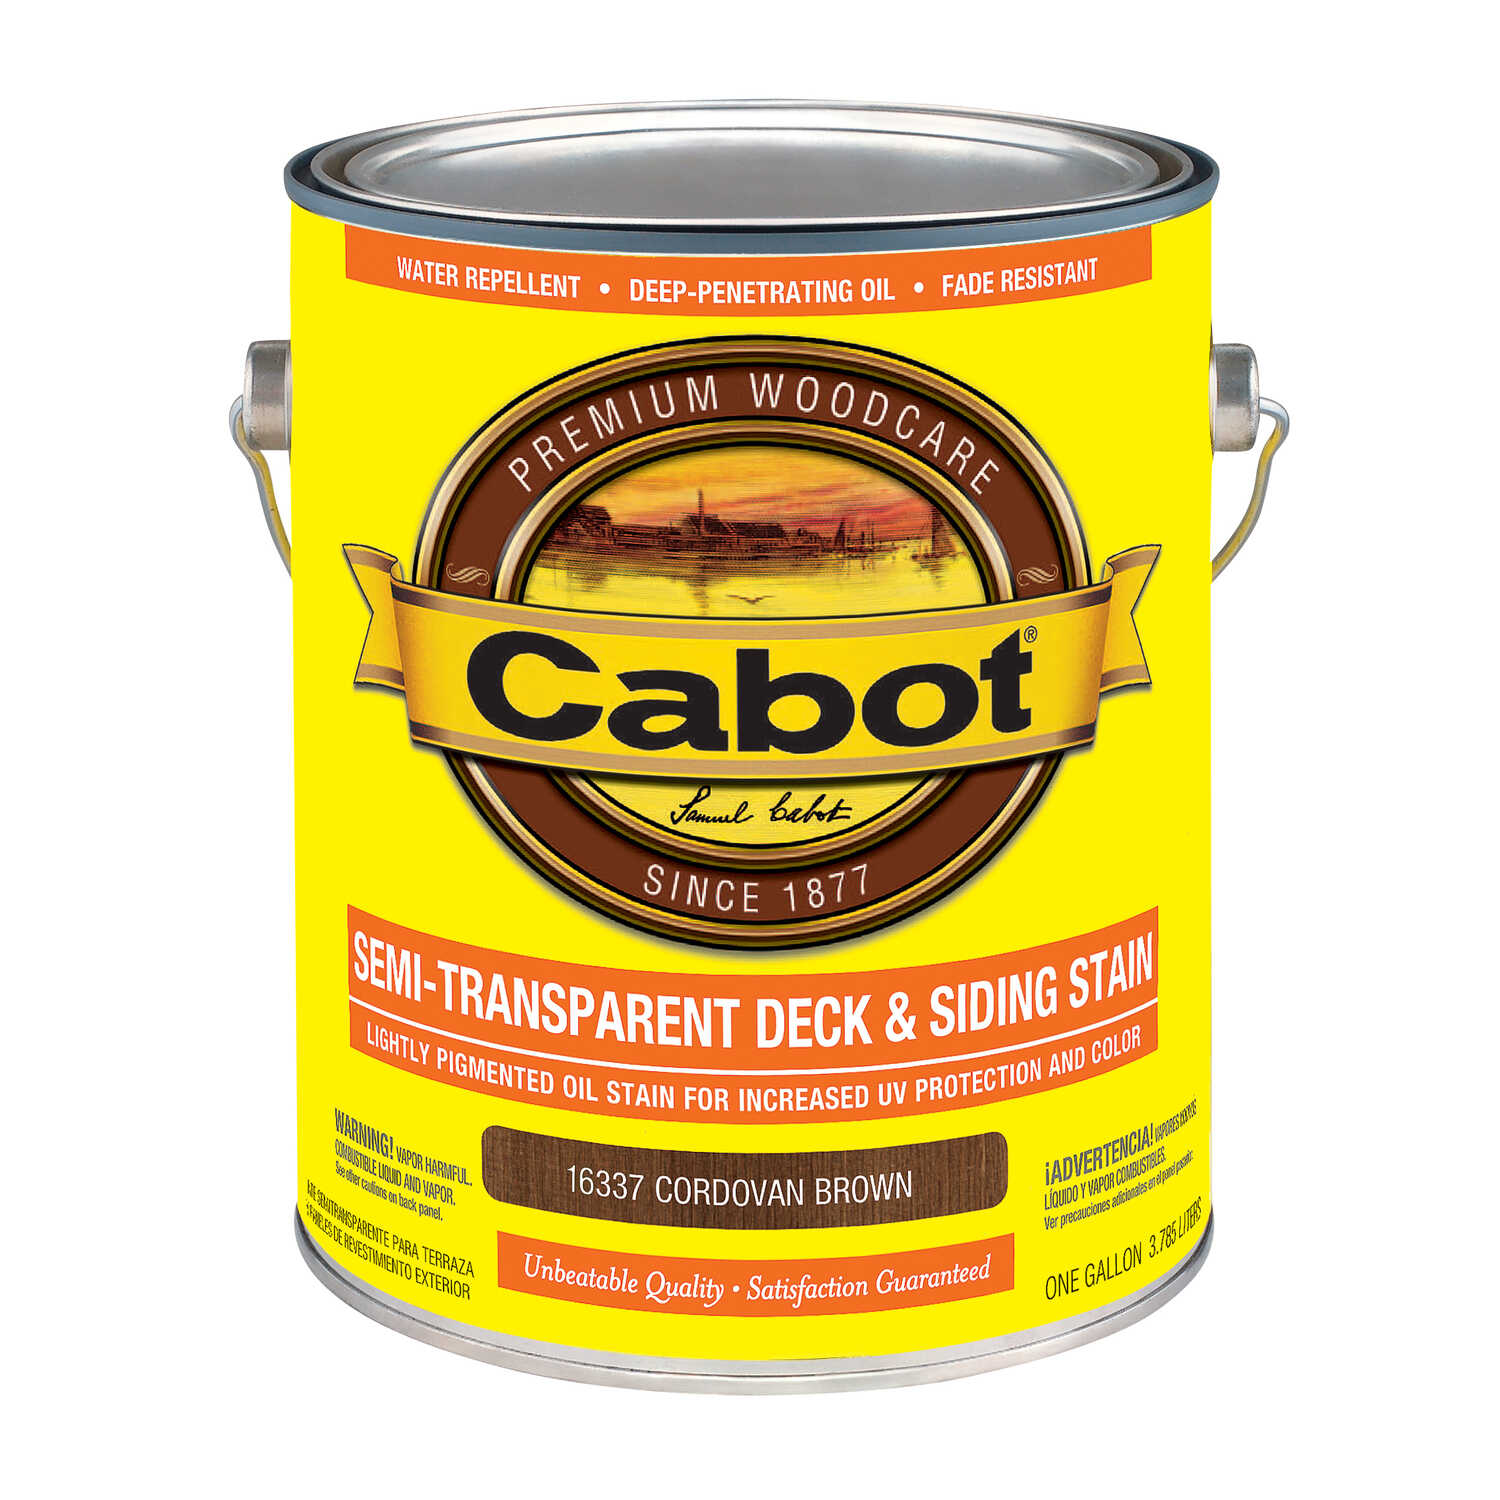 Cabot  Semi-Transparent Deck & Siding Stain  Semi-Transparent  Cordovan Brown  Oil-Based  Natural Oi